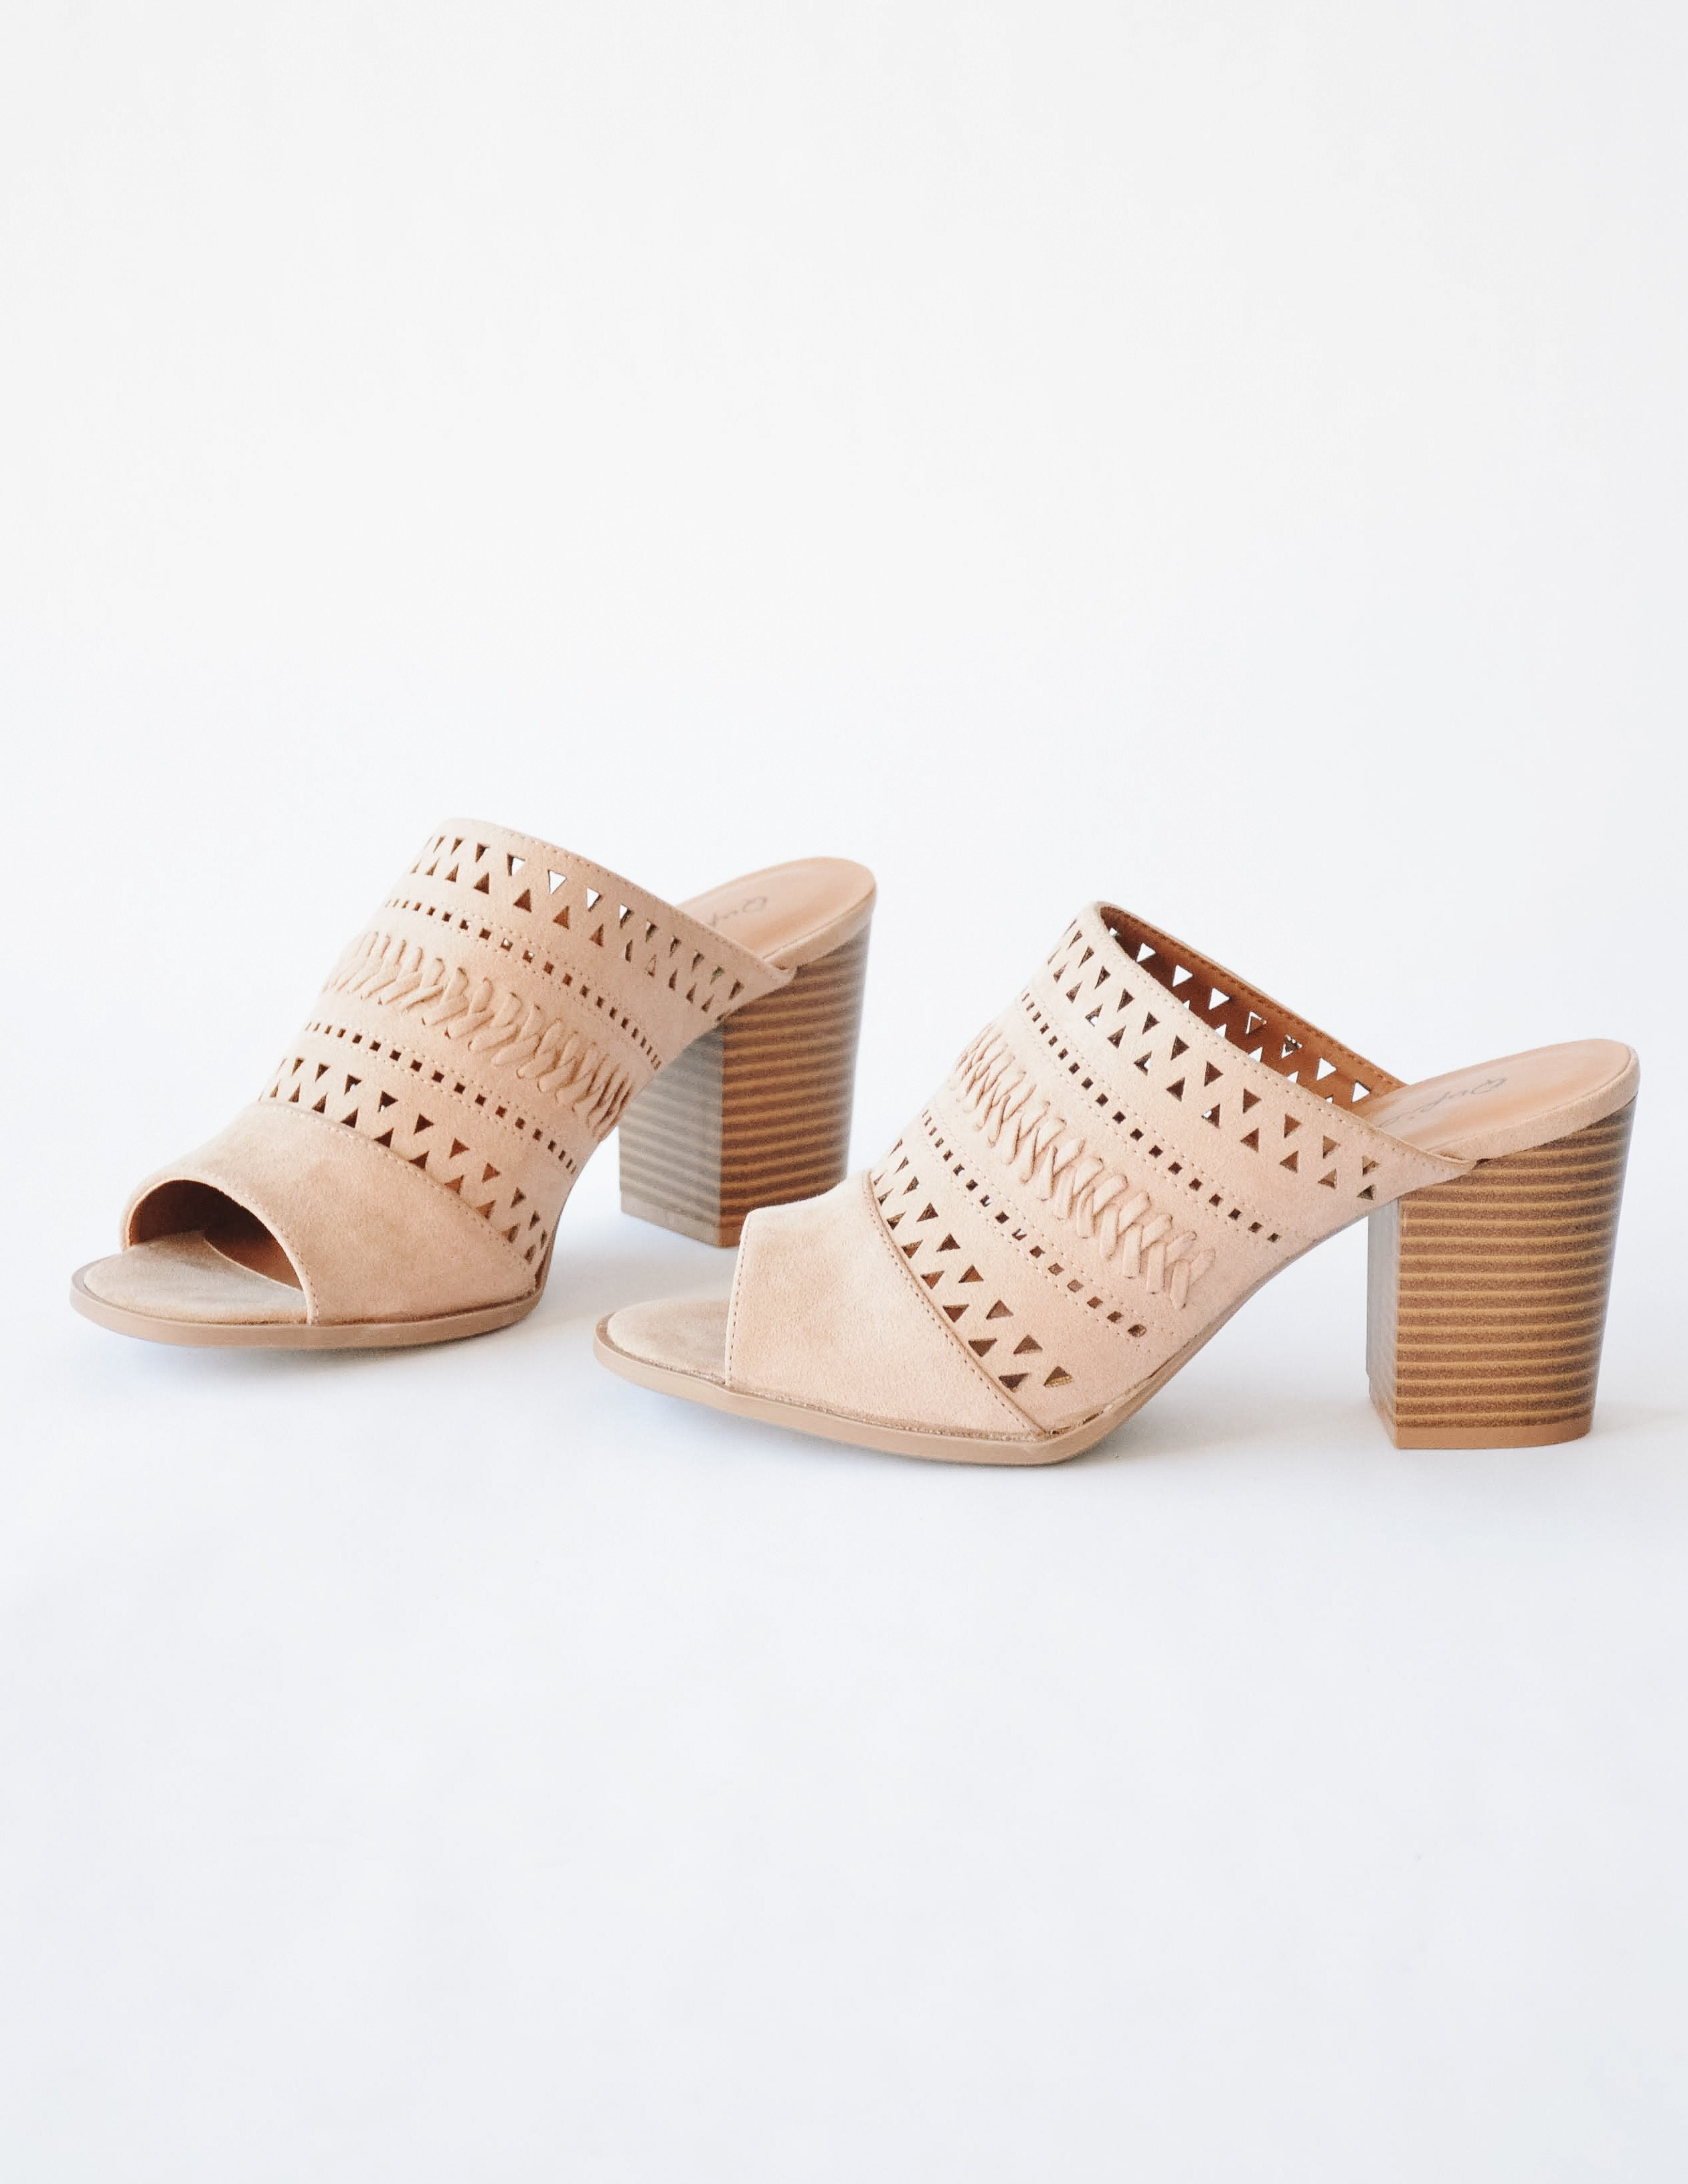 Warm taupe highly selective faux suede heel with laser cut details and embroidery